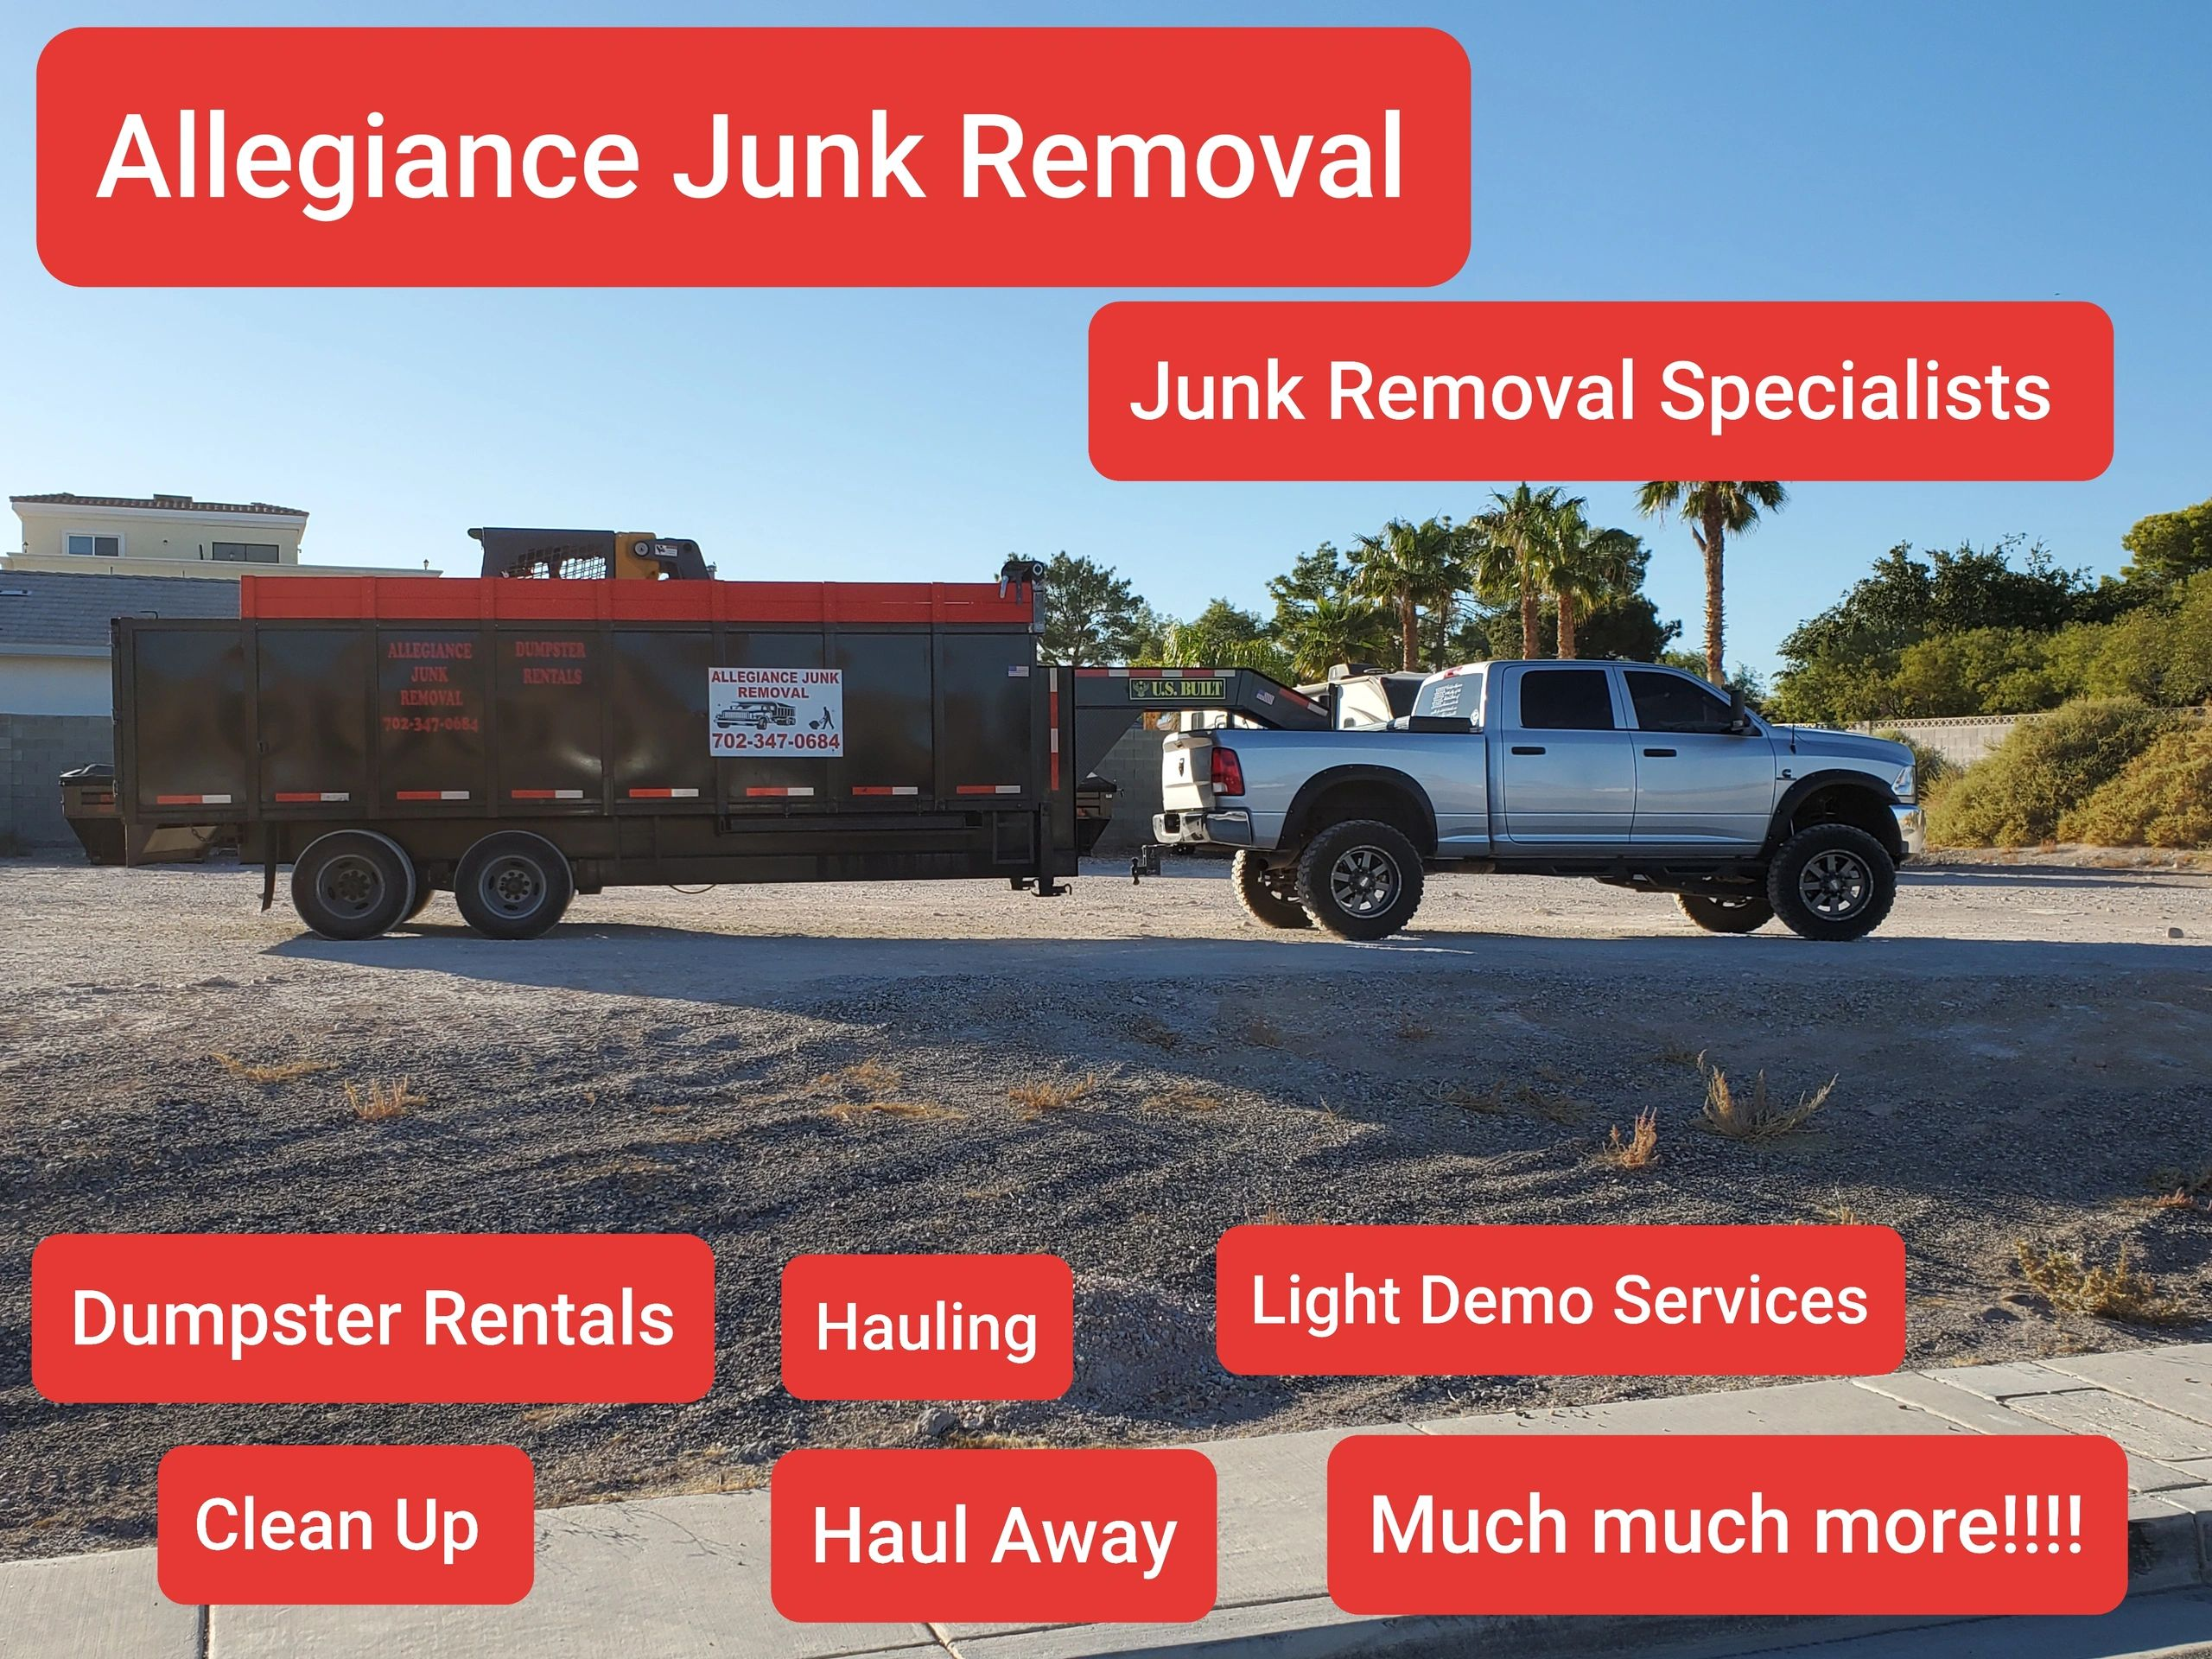 Dumpster Rentals, Junk Removal, Hauling, Trash, Clean Up Service, Las Vegas, Henderson, Vegas Valley